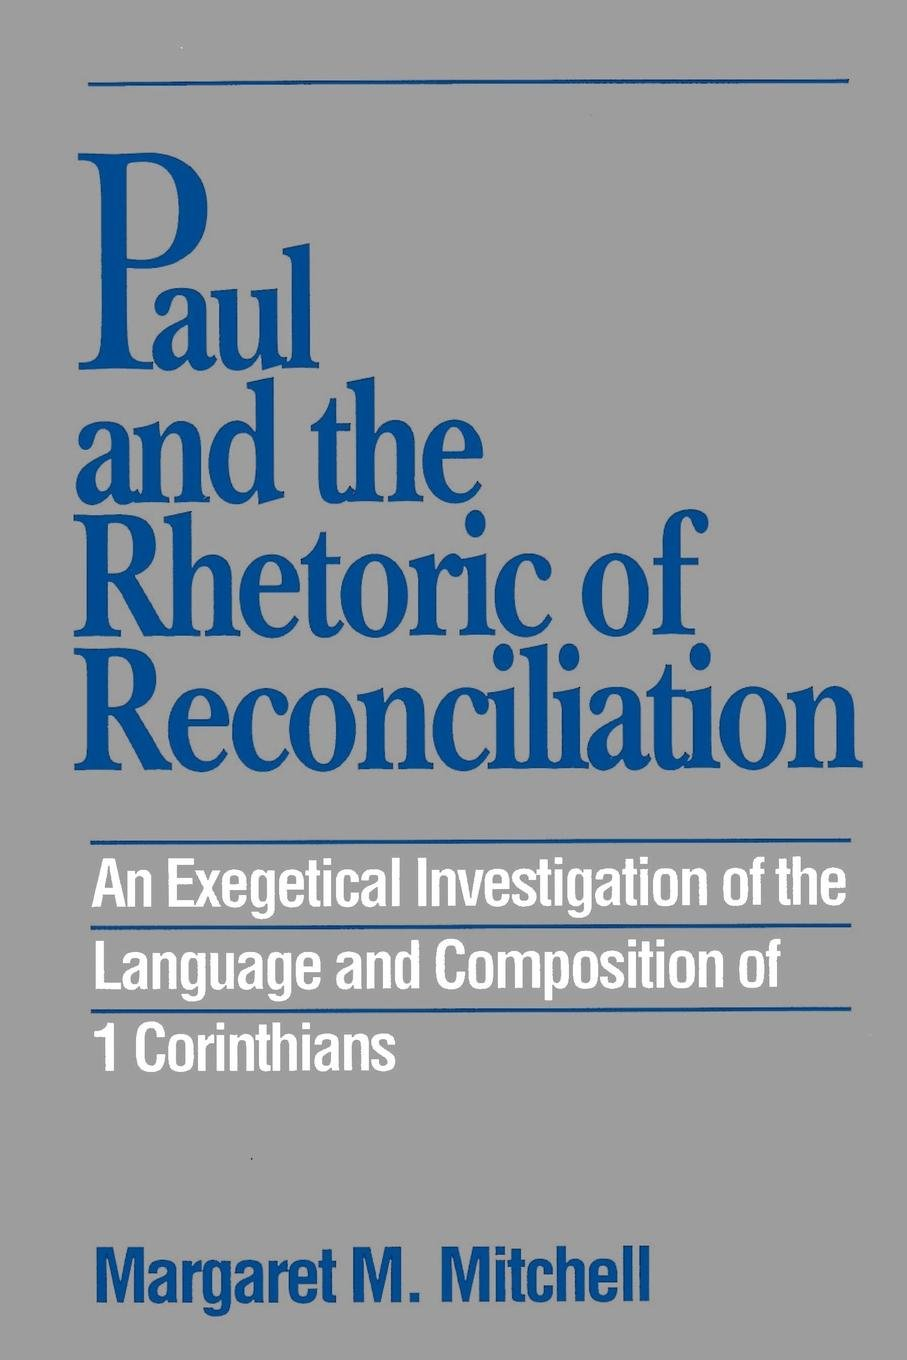 Paul and the Rhetoric of Reconciliation: An Exegetical Investigation